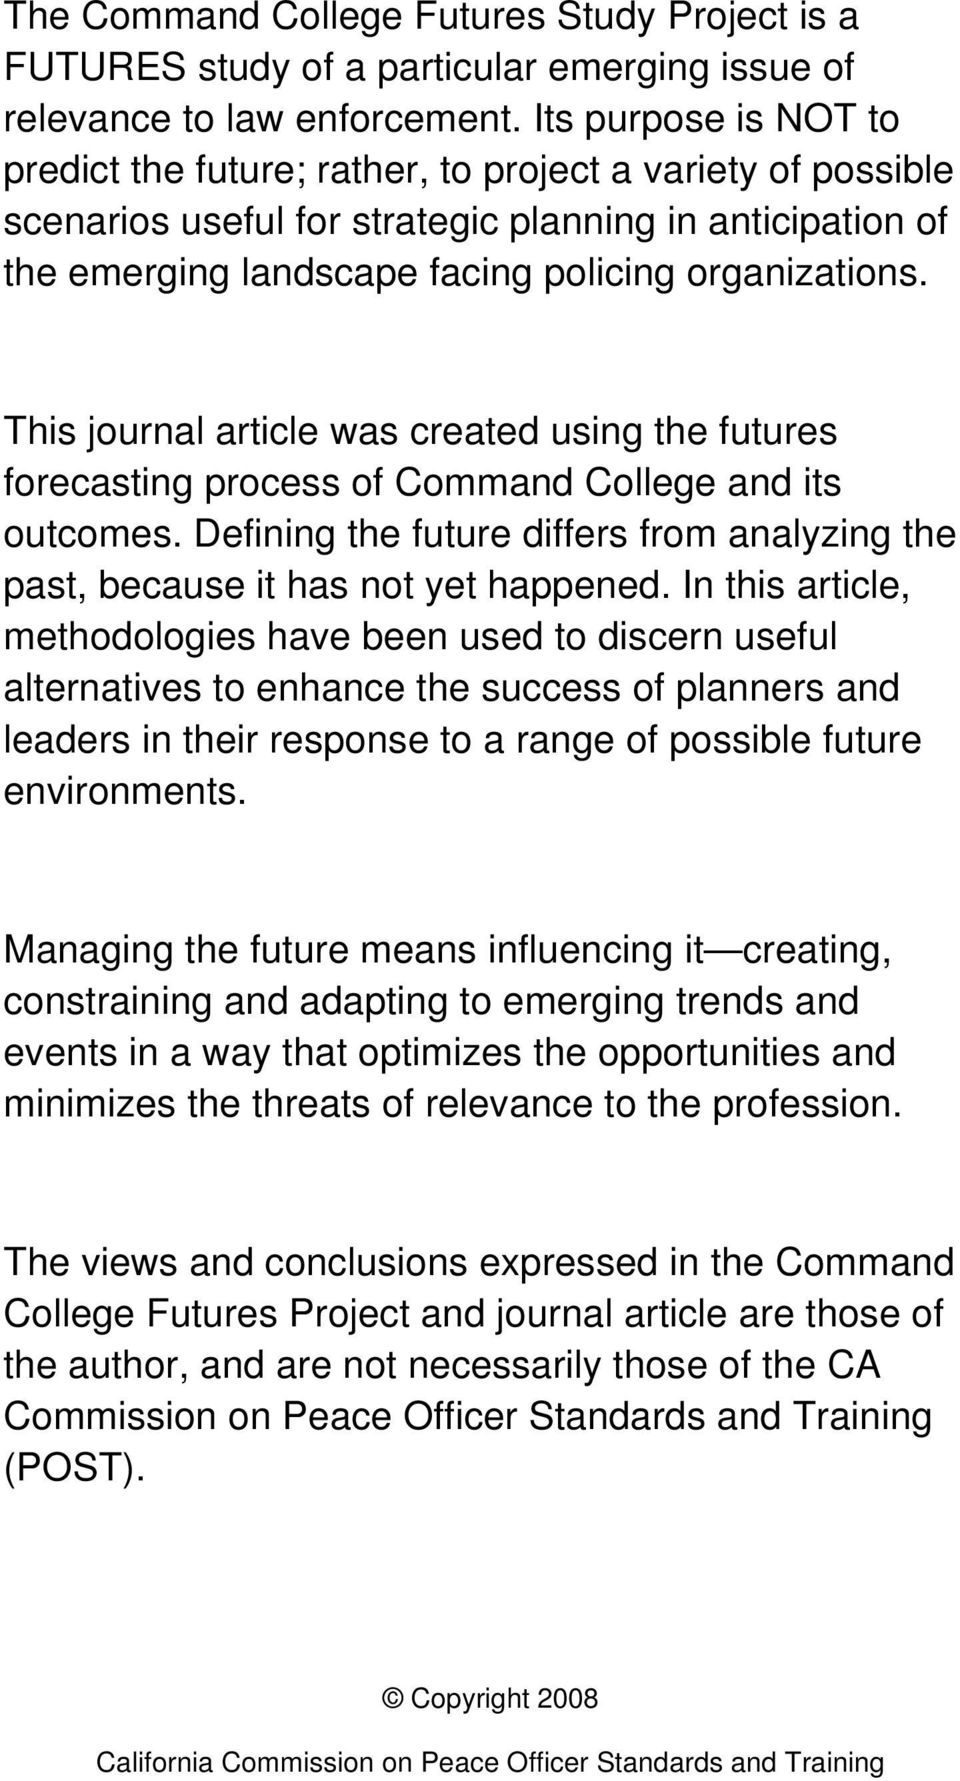 This journal article was created using the futures forecasting process of Command College and its outcomes. Defining the future differs from analyzing the past, because it has not yet happened.